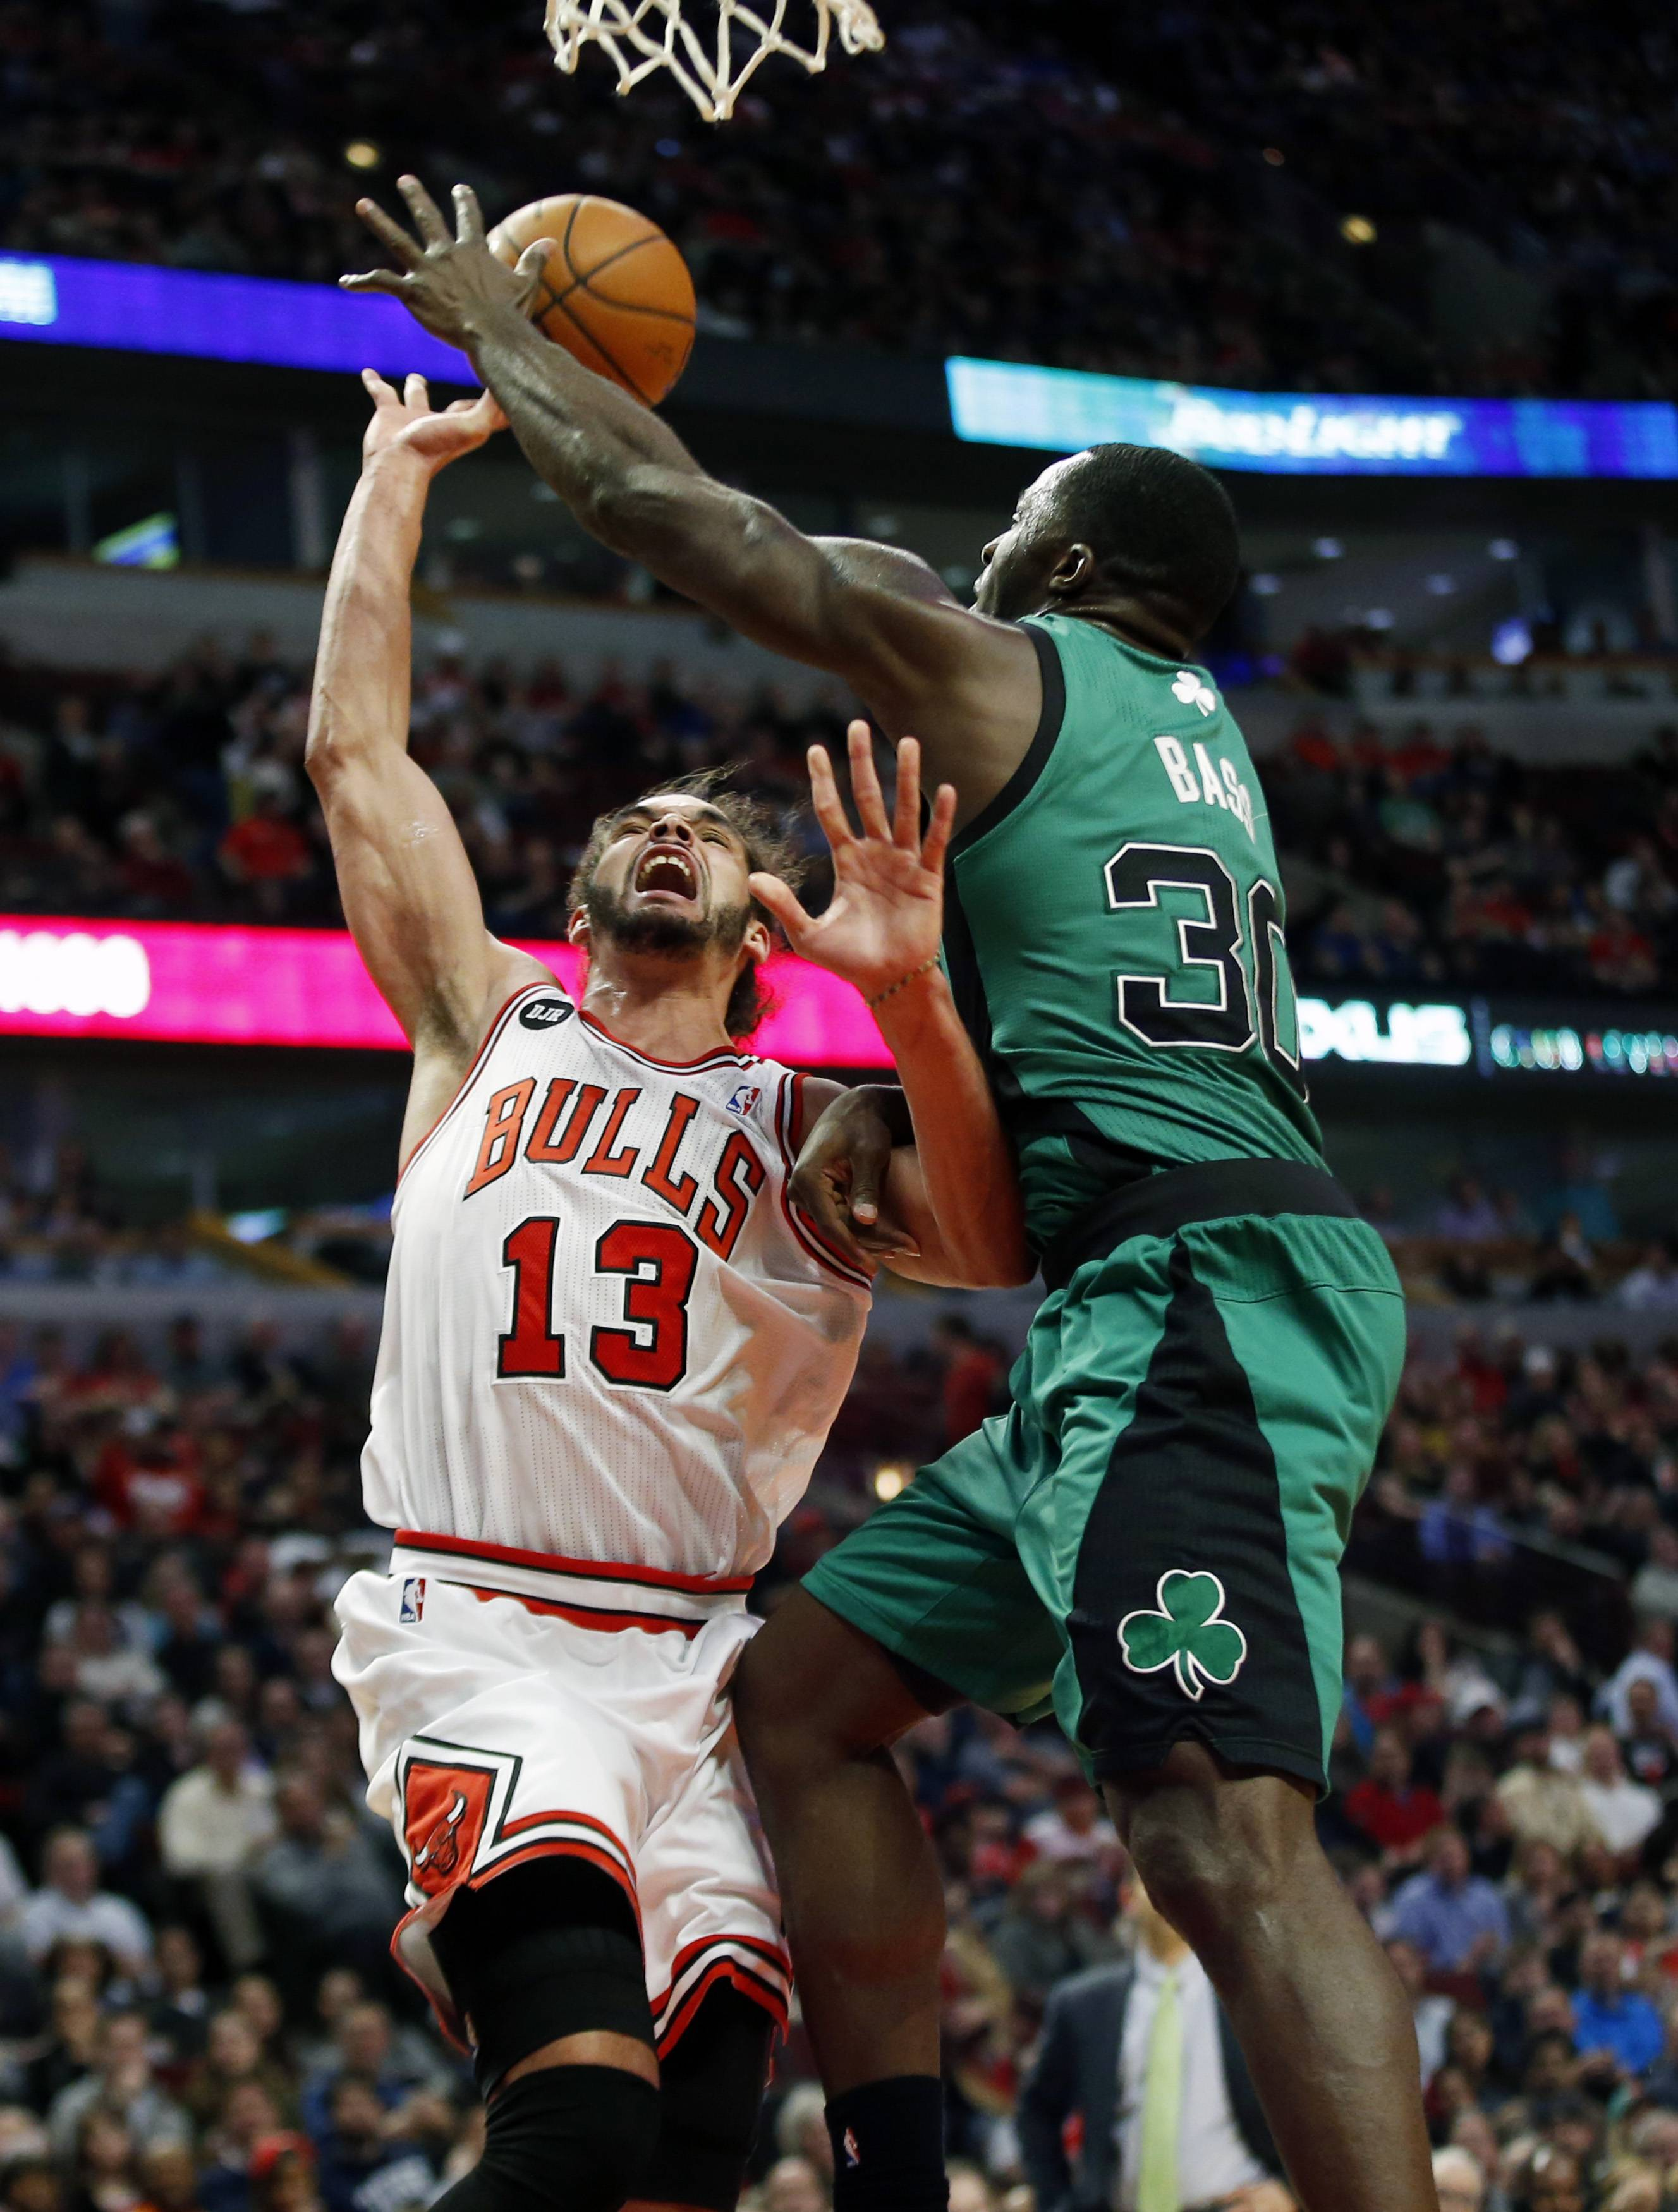 Chicago Bulls center Joakim Noah, left, is fouled on the way to the basket by Boston Celtics forward Brandon Bass, right, during the second half of an NBA basketball game in Chicago, Monday, March 31, 2014. The Bulls won 94-80.